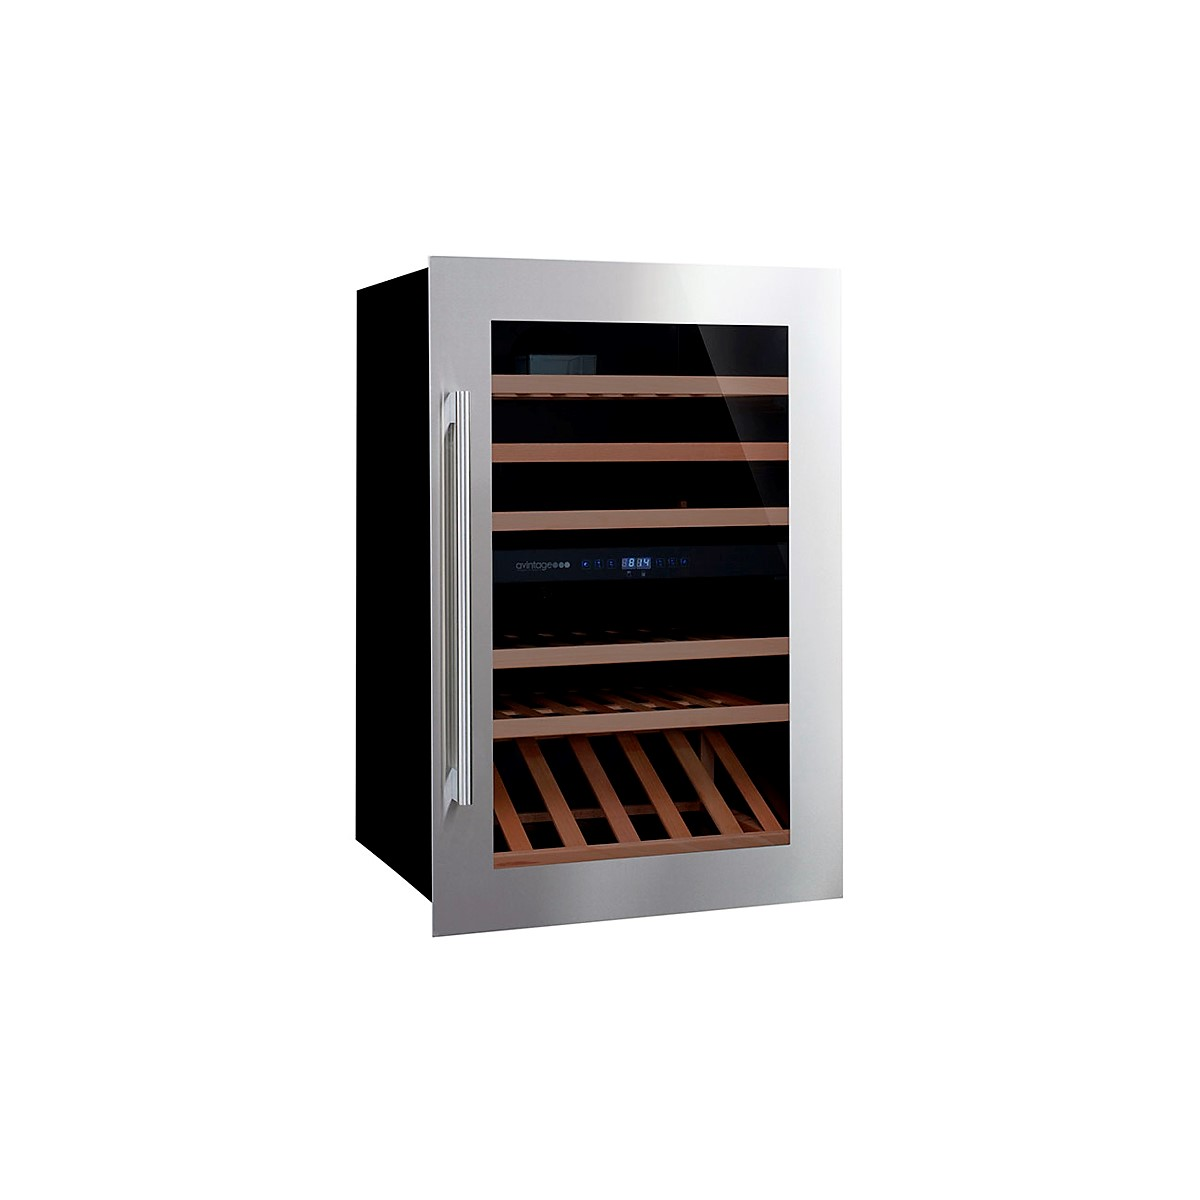 Avintage - Wine Cellar Built-in AV45XDZI 2